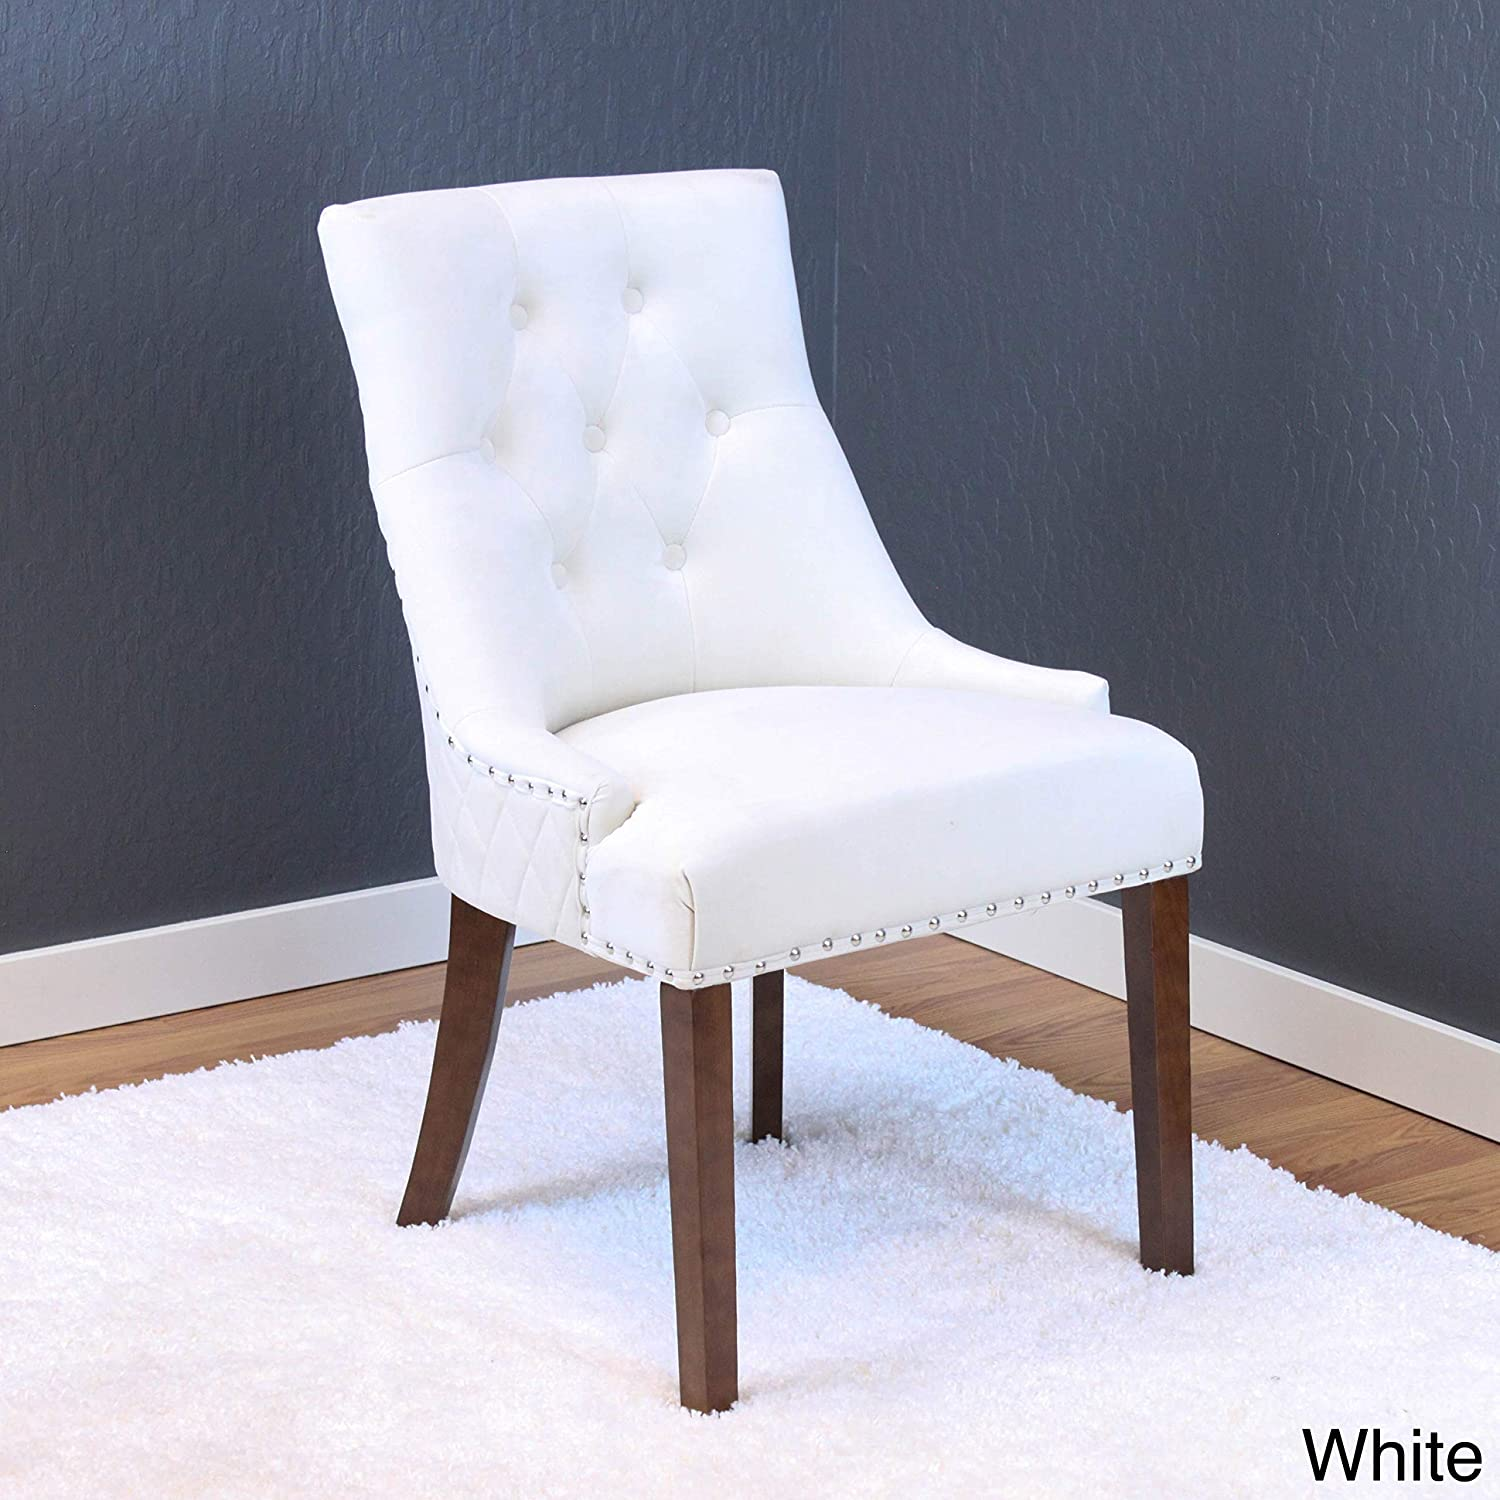 Monsoon Lemele Tufted Velvet Dining Chairs Set of 2 White